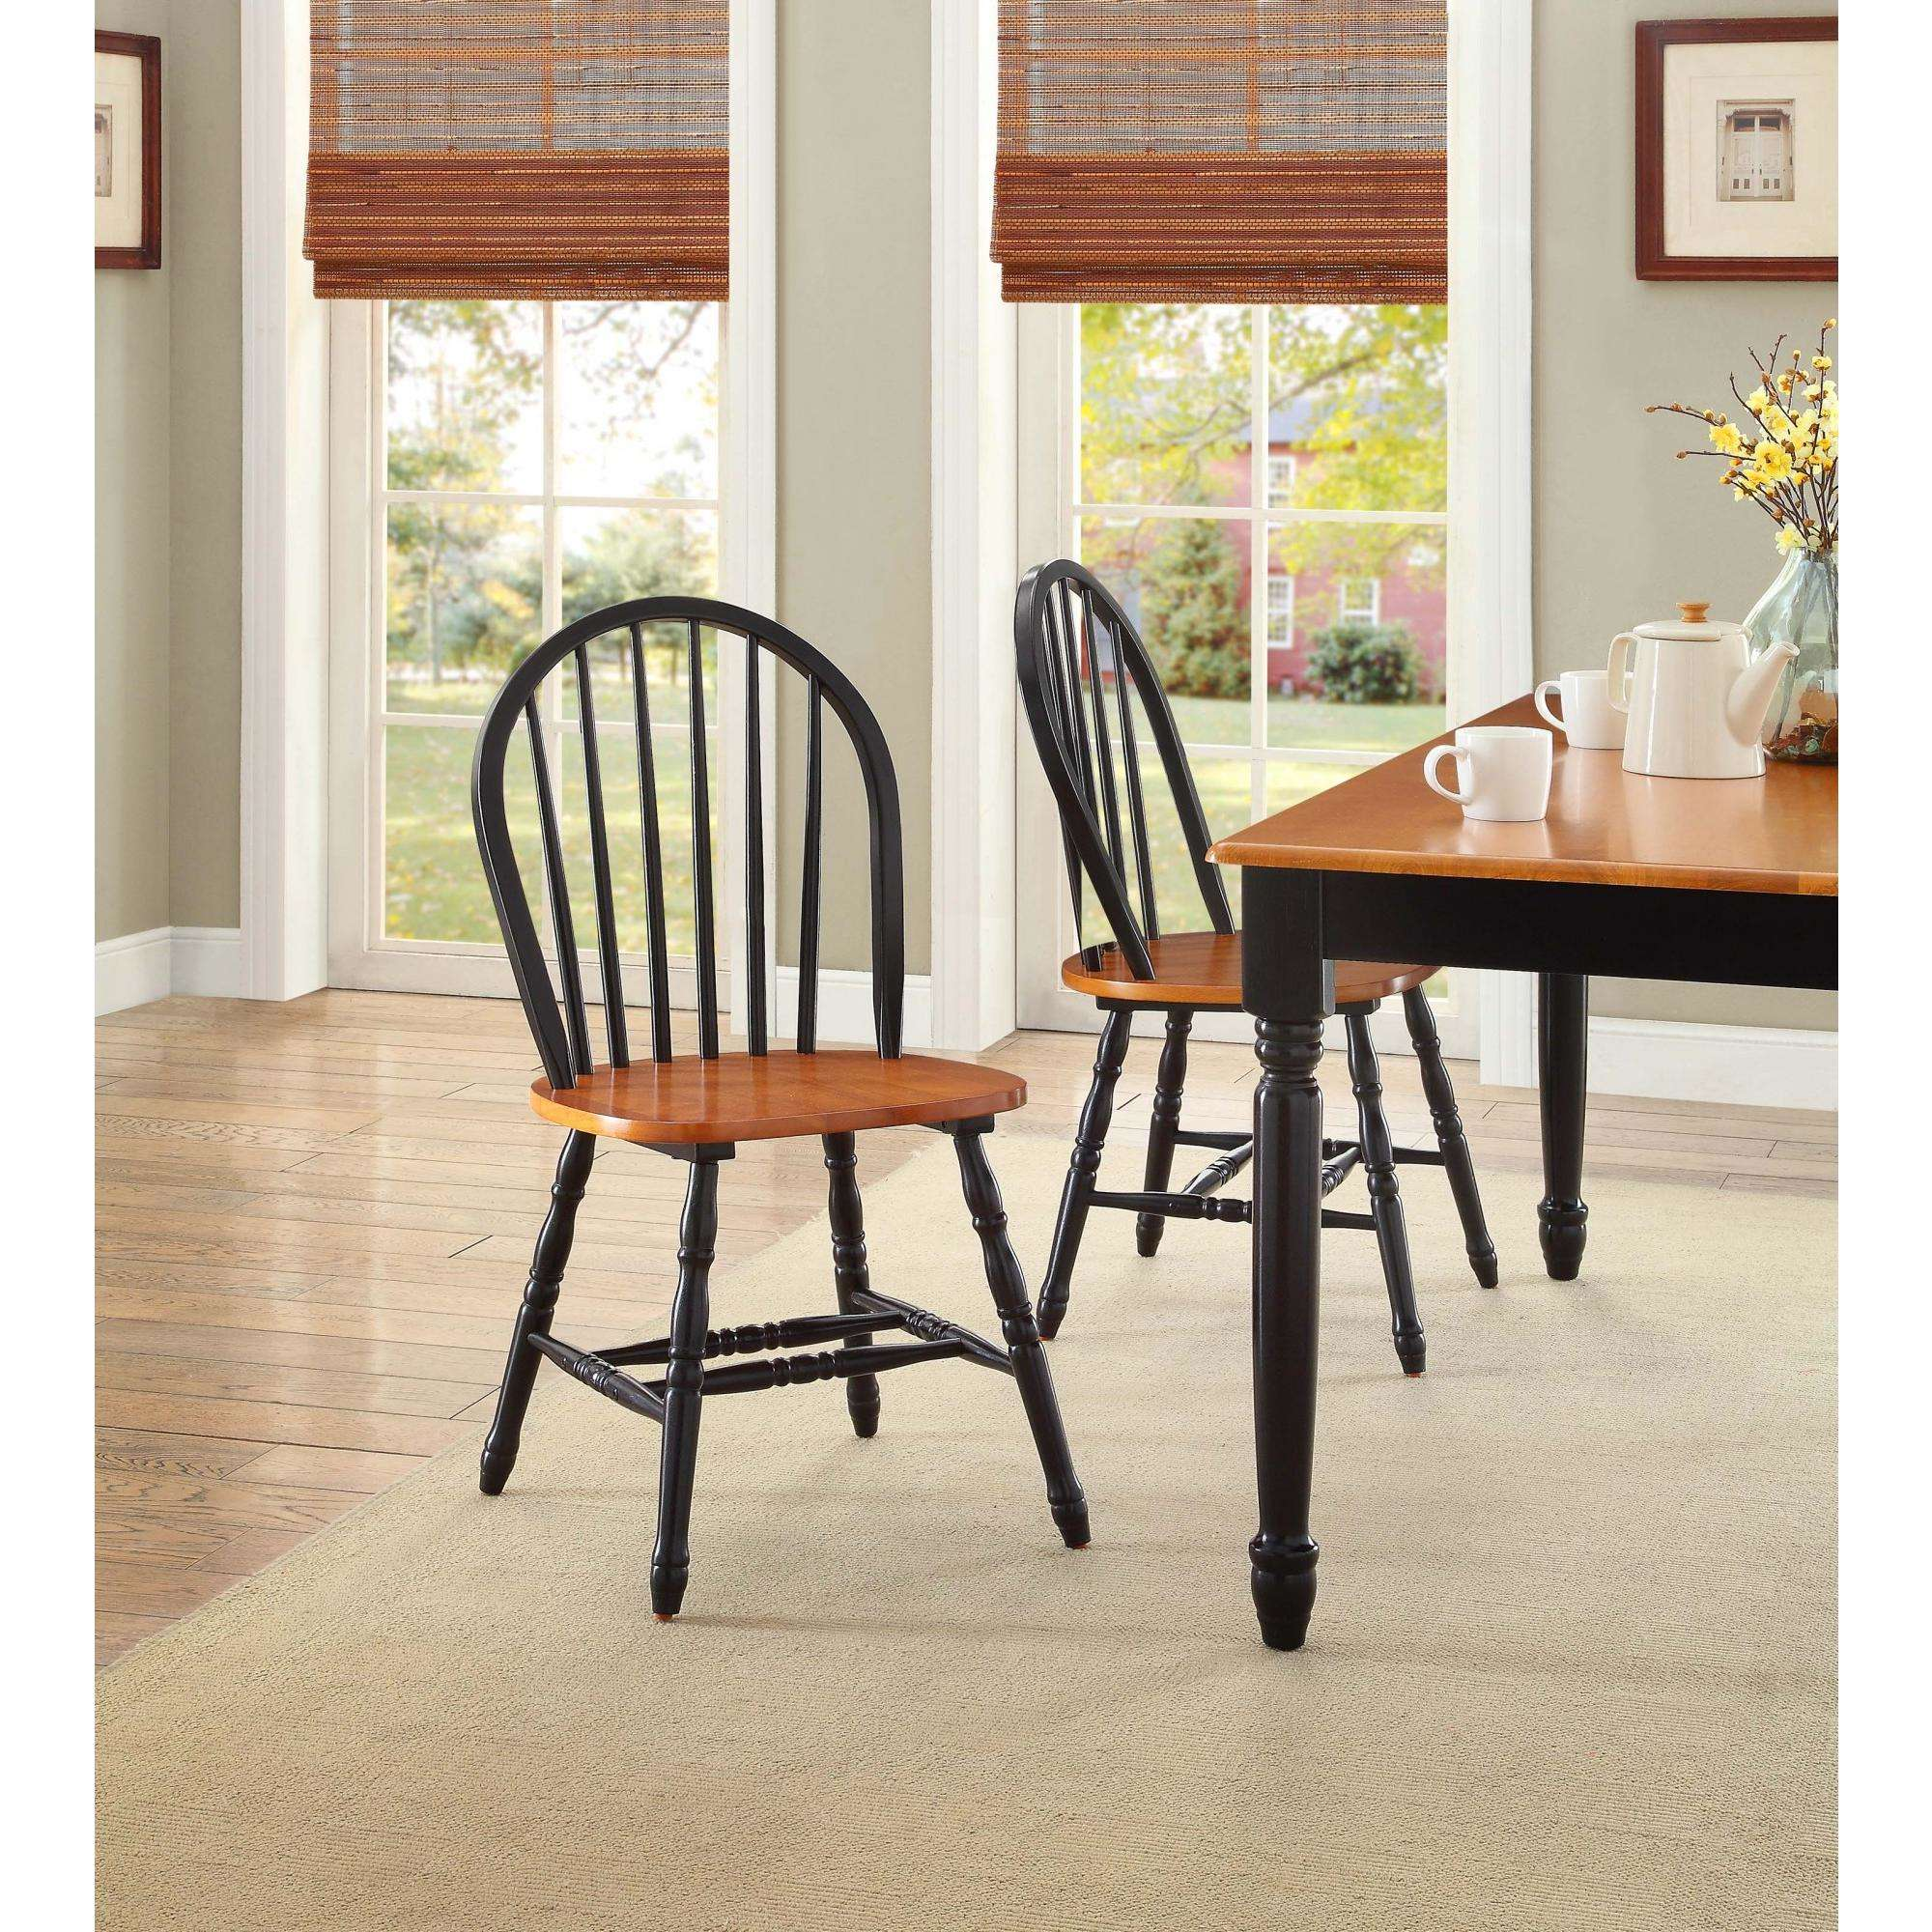 Better Homes and Gardens Autumn Lane Windsor Chairs Set of 2